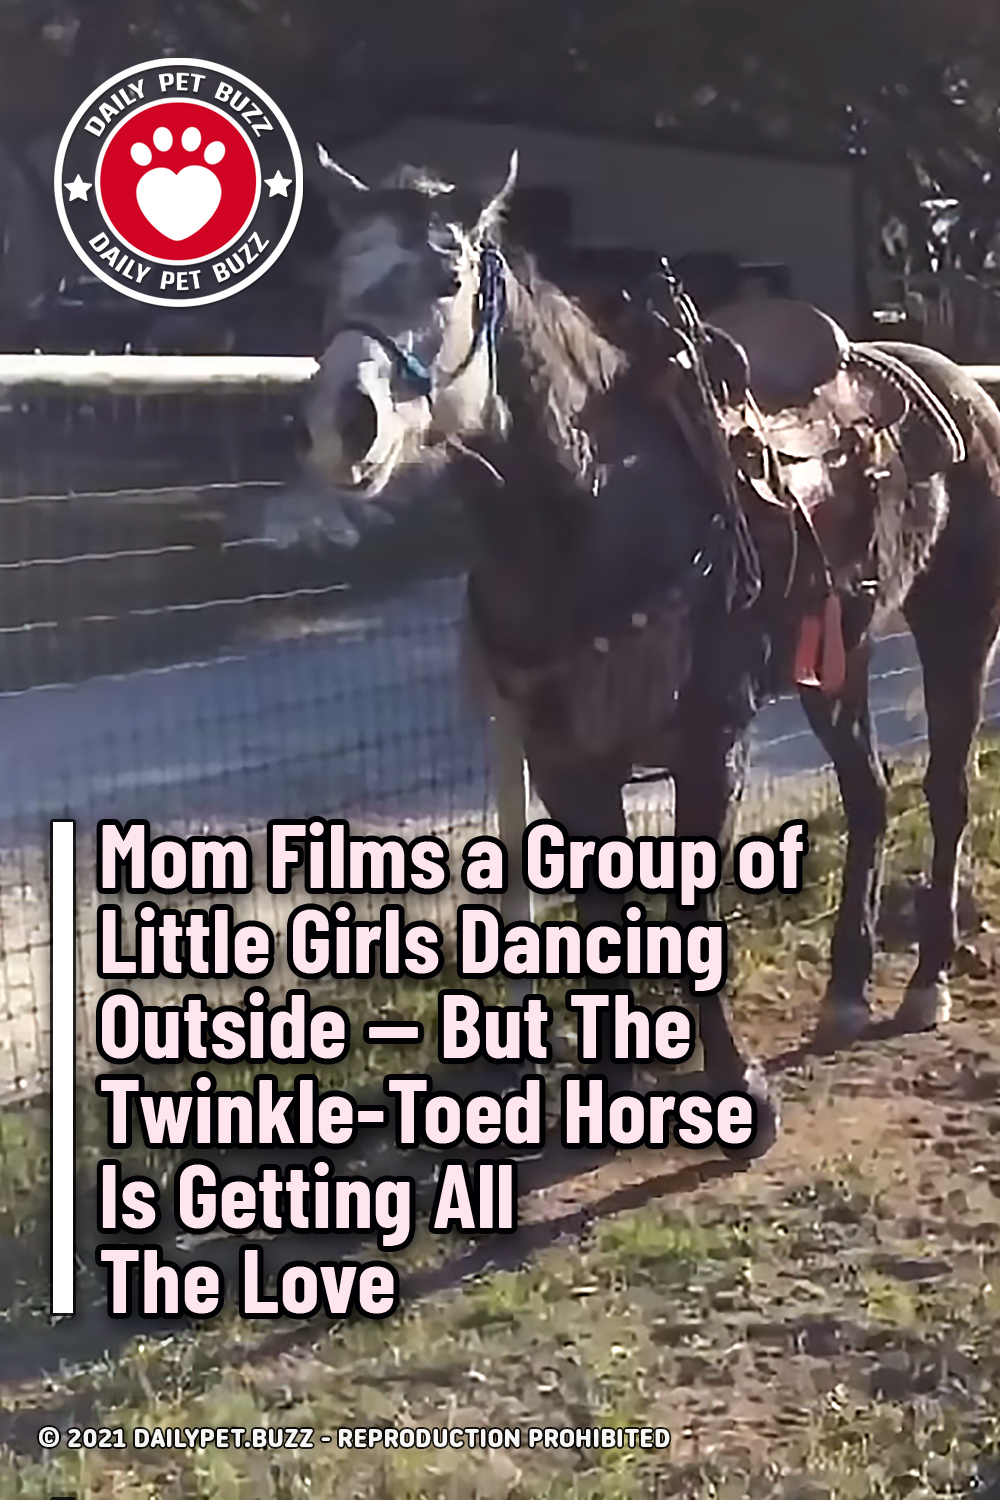 Mom Films a Group of Little Girls Dancing Outside — But The Twinkle-Toed Horse Is Getting All The Love